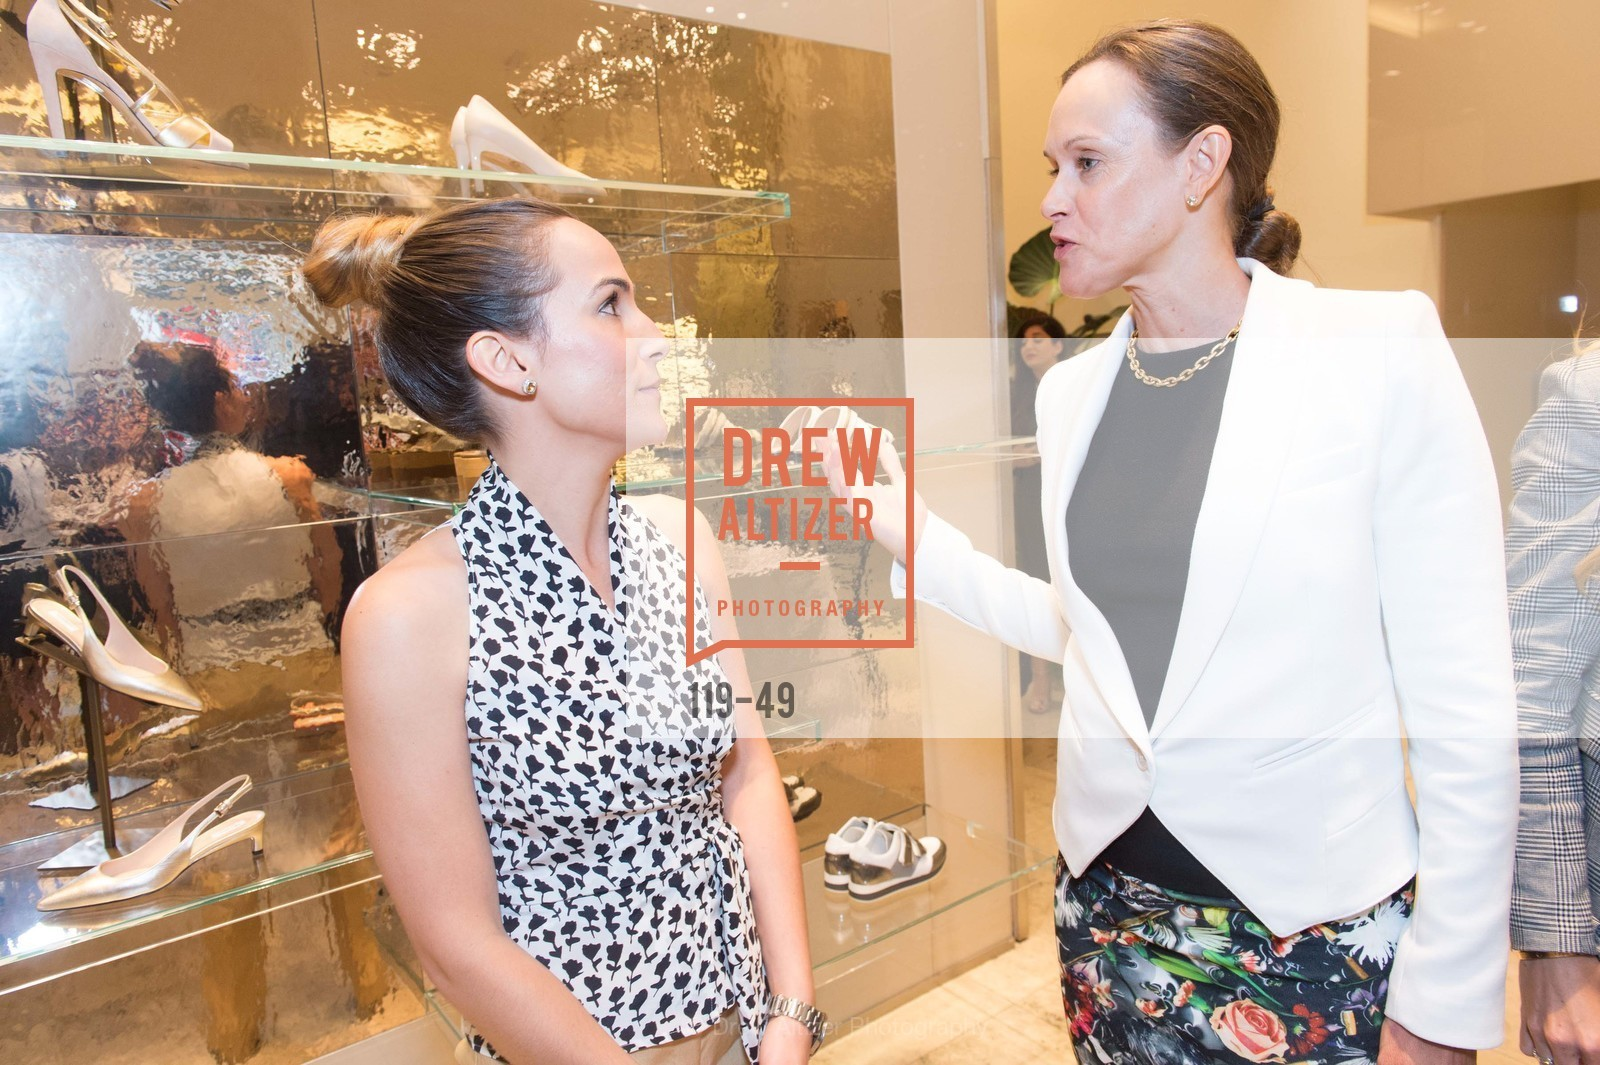 Alicia Morvari, Karen Flynn, Luncheon Hosted by Max Mara, Max Mara. 175 Post St, San Francisco, CA 94108, April 21st, 2015,Drew Altizer, Drew Altizer Photography, full-service agency, private events, San Francisco photographer, photographer california